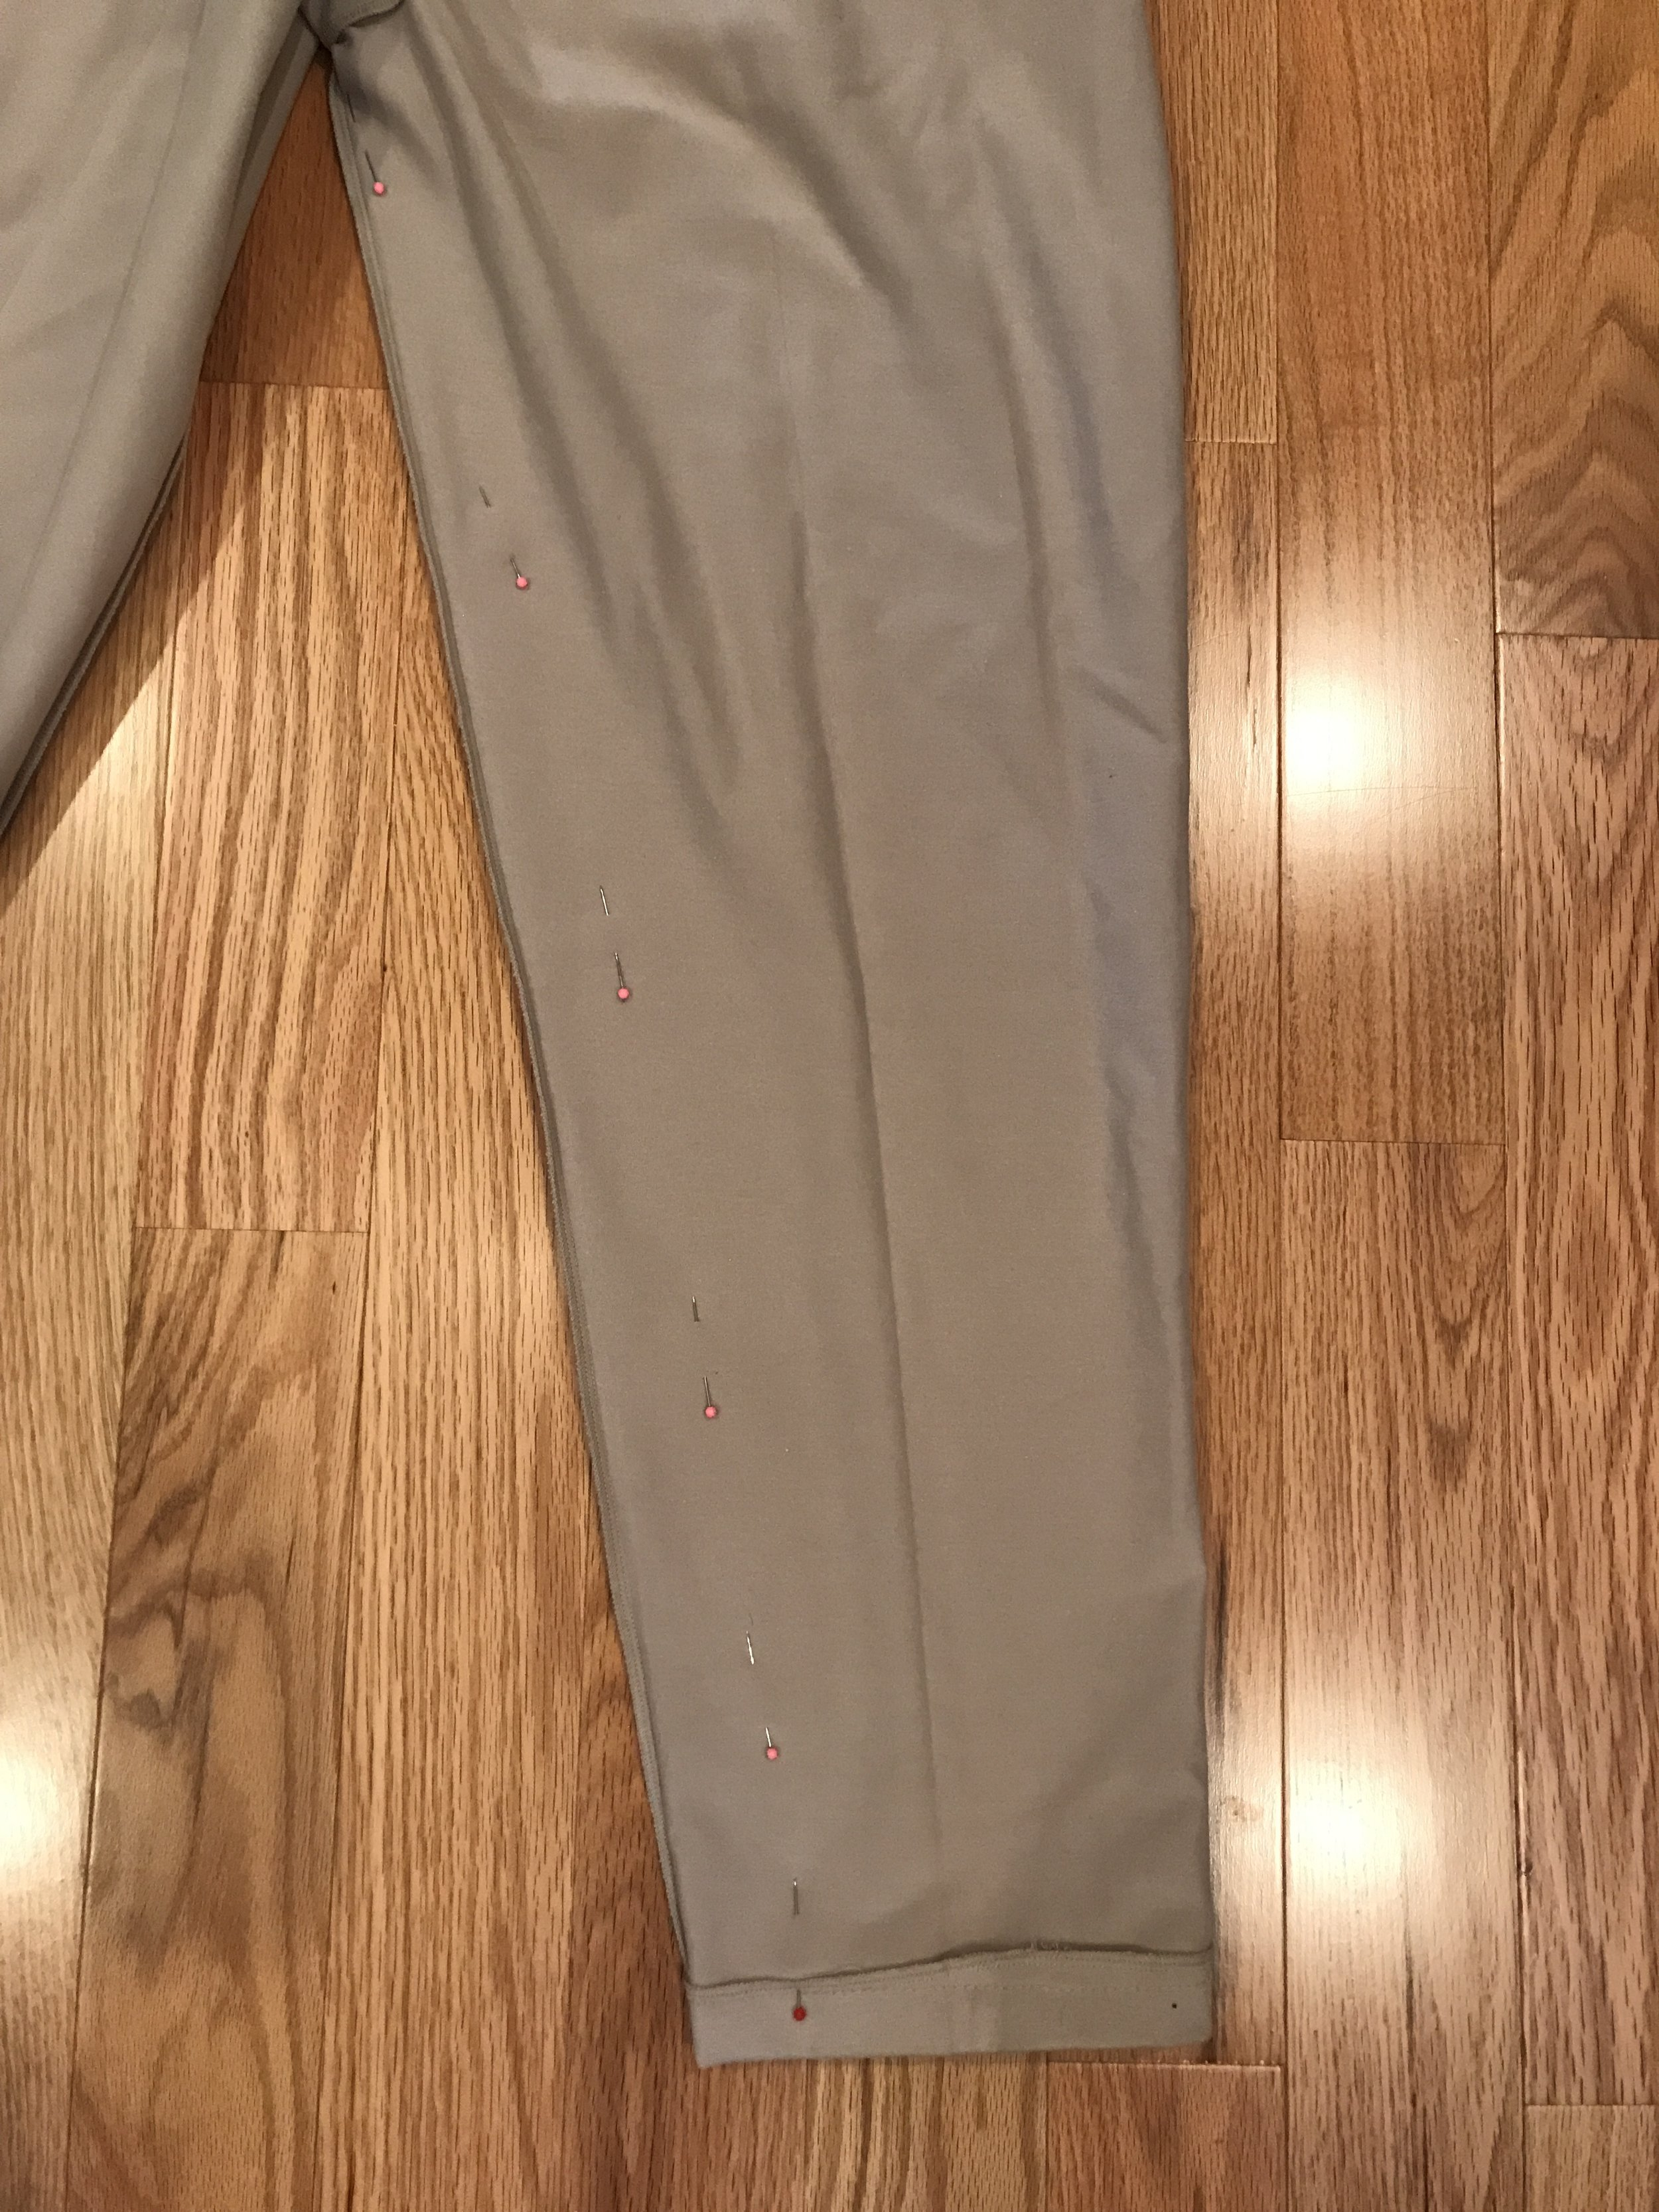 Making the Cuff Pant into Joggers